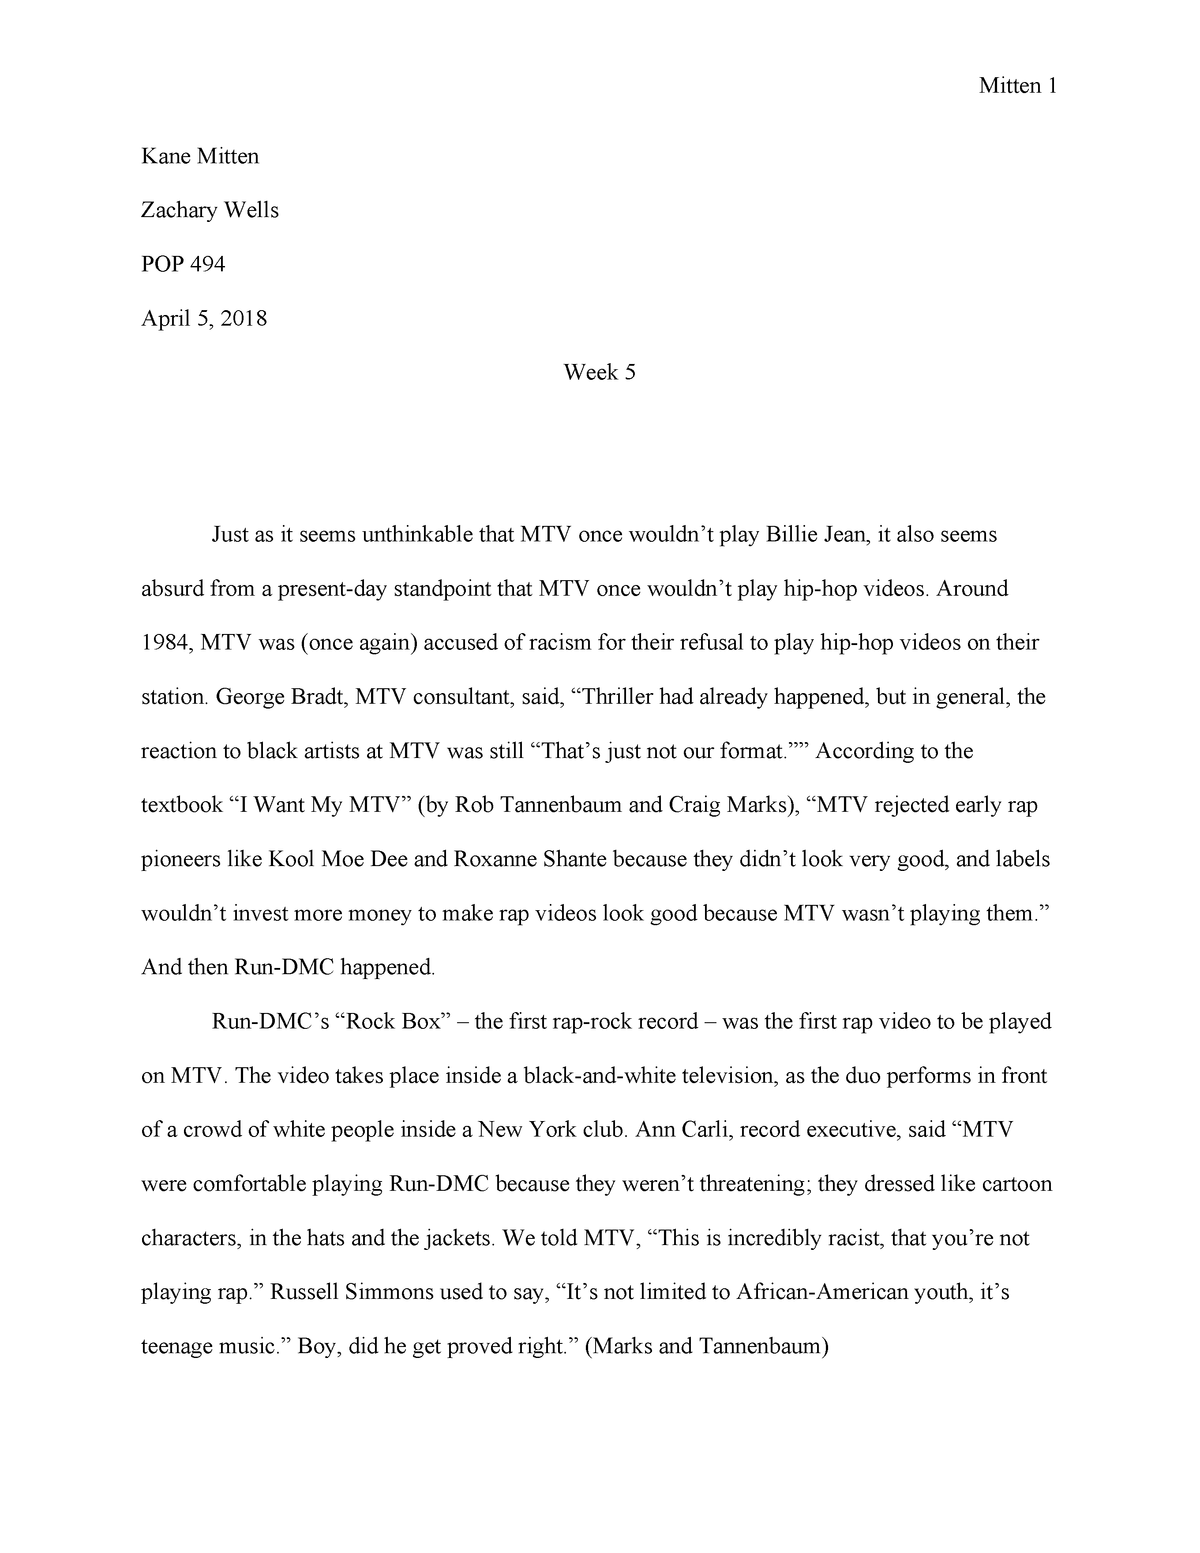 Pop paper week 5 - One of my weekly essays for the course